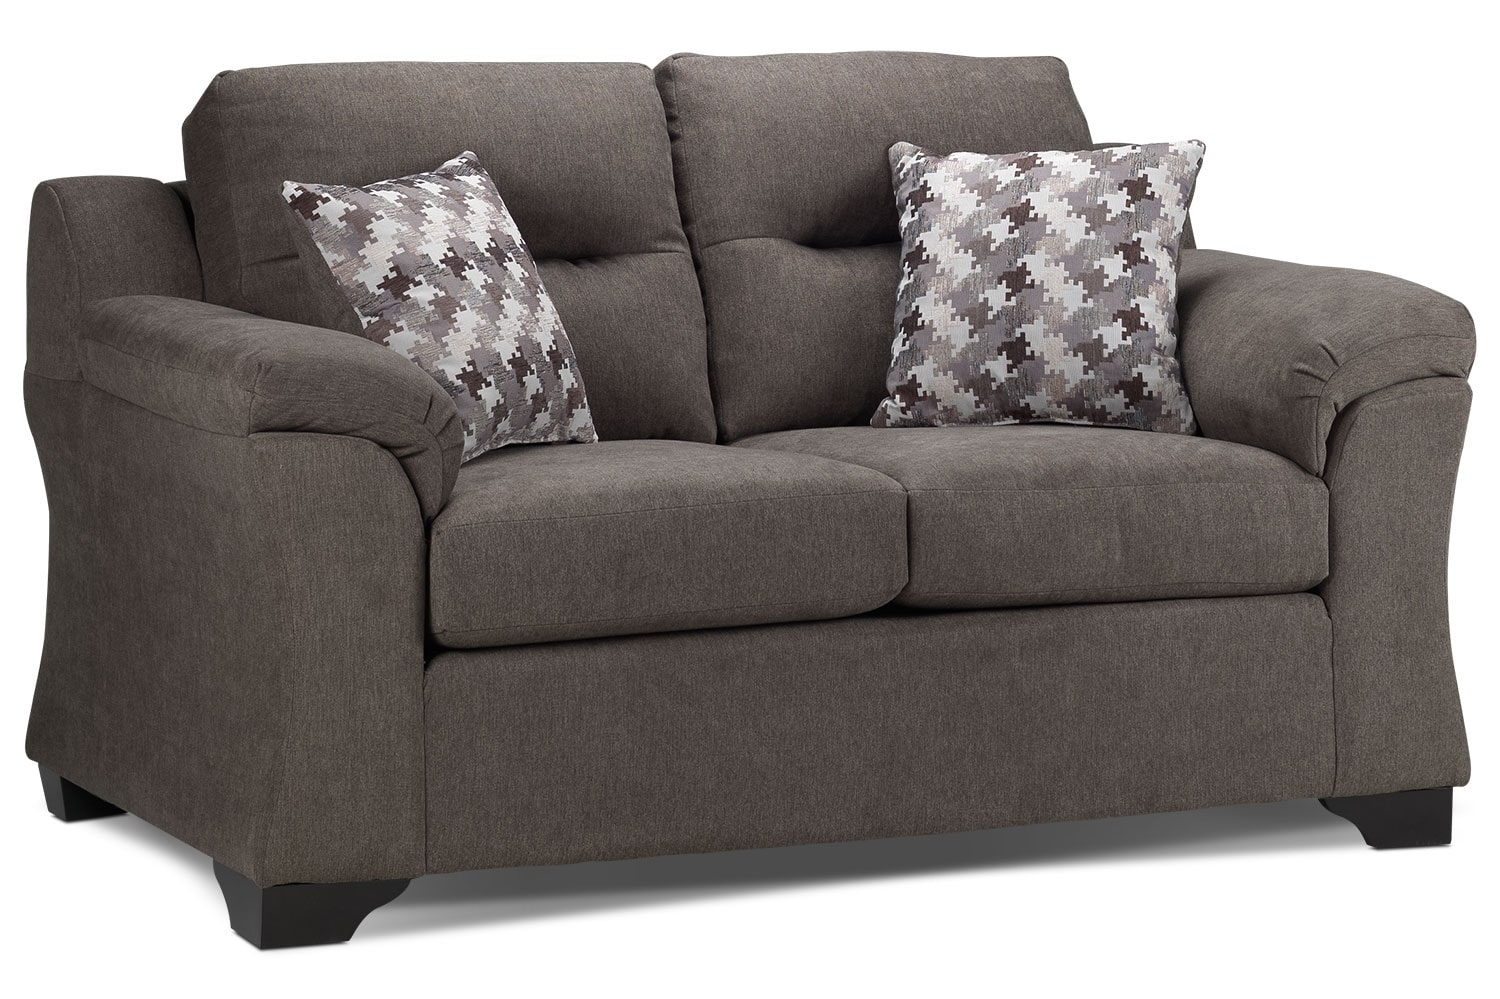 Lawlor Loveseat